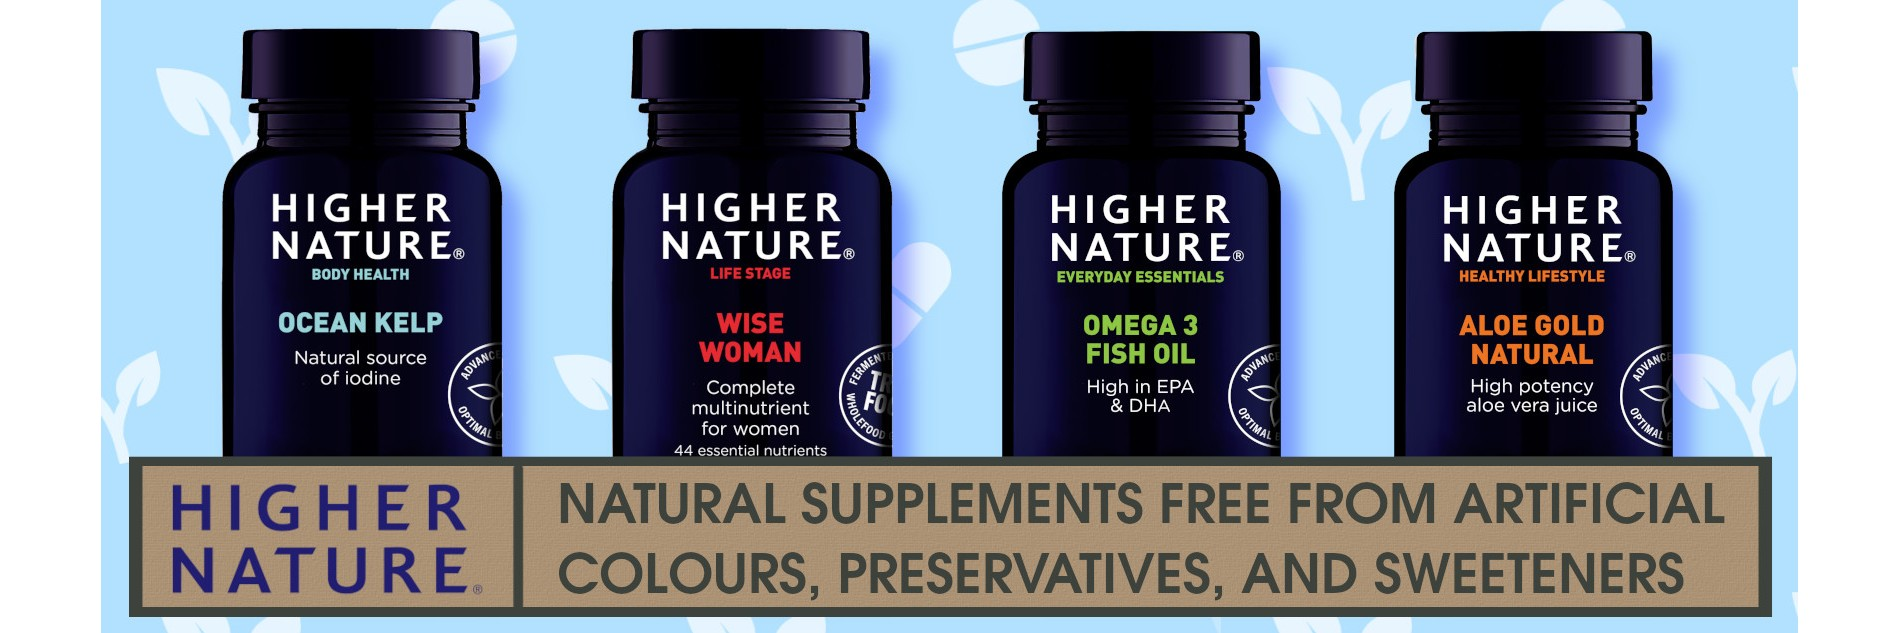 higher Nature - natural and free-from supplements